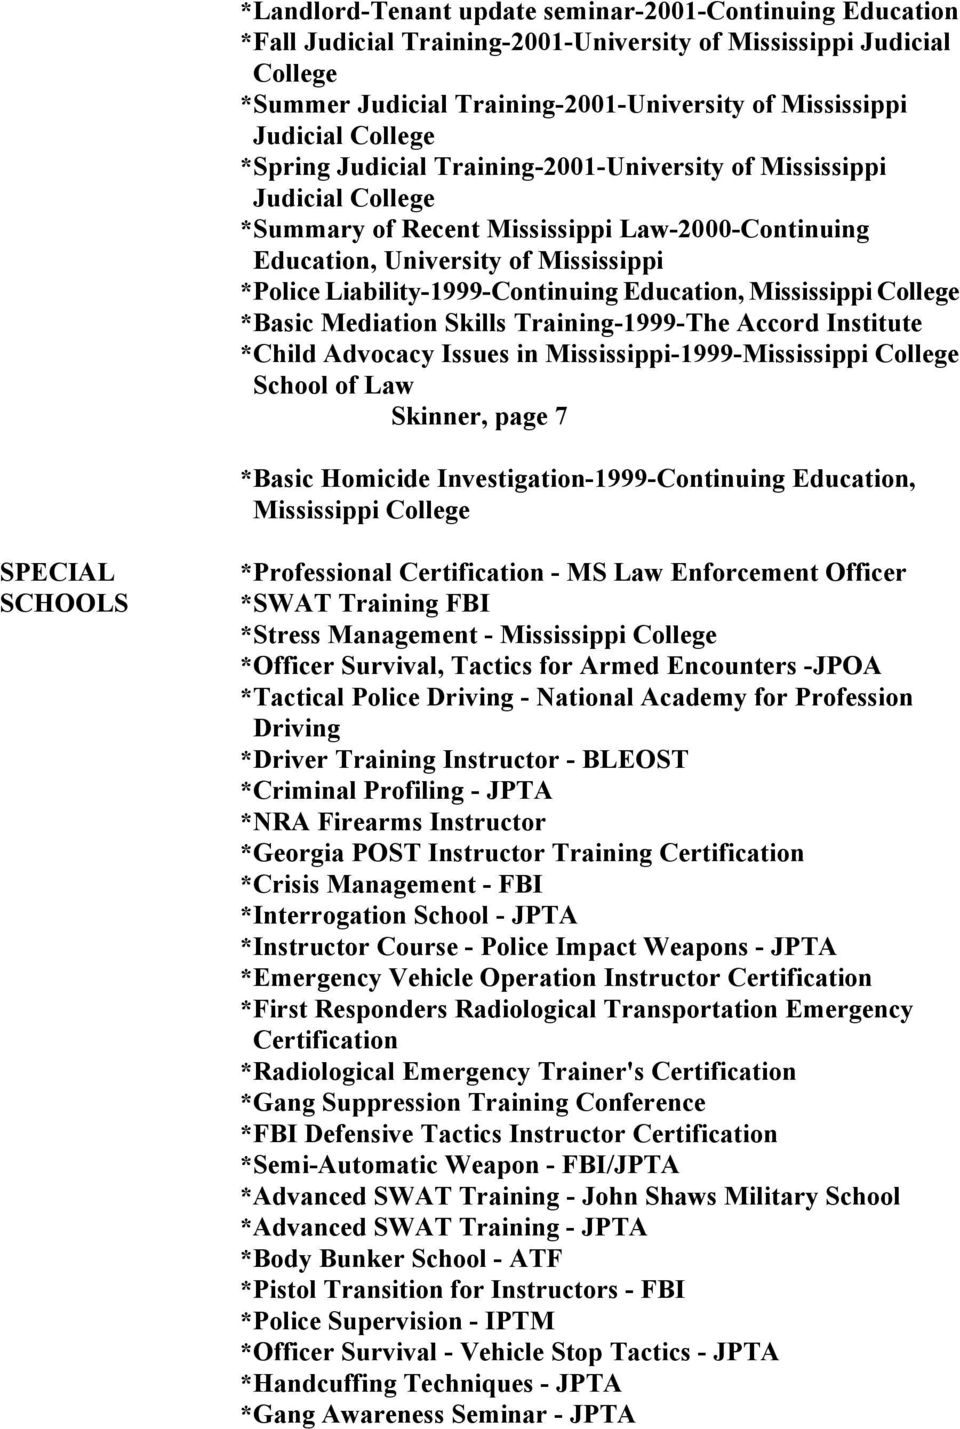 Mediation Skills Training-1999-The Accord Institute *Child Advocacy Issues in Mississippi-1999-Mississippi School of Law Skinner, page 7 *Basic Homicide Investigation-1999-Continuing Education,